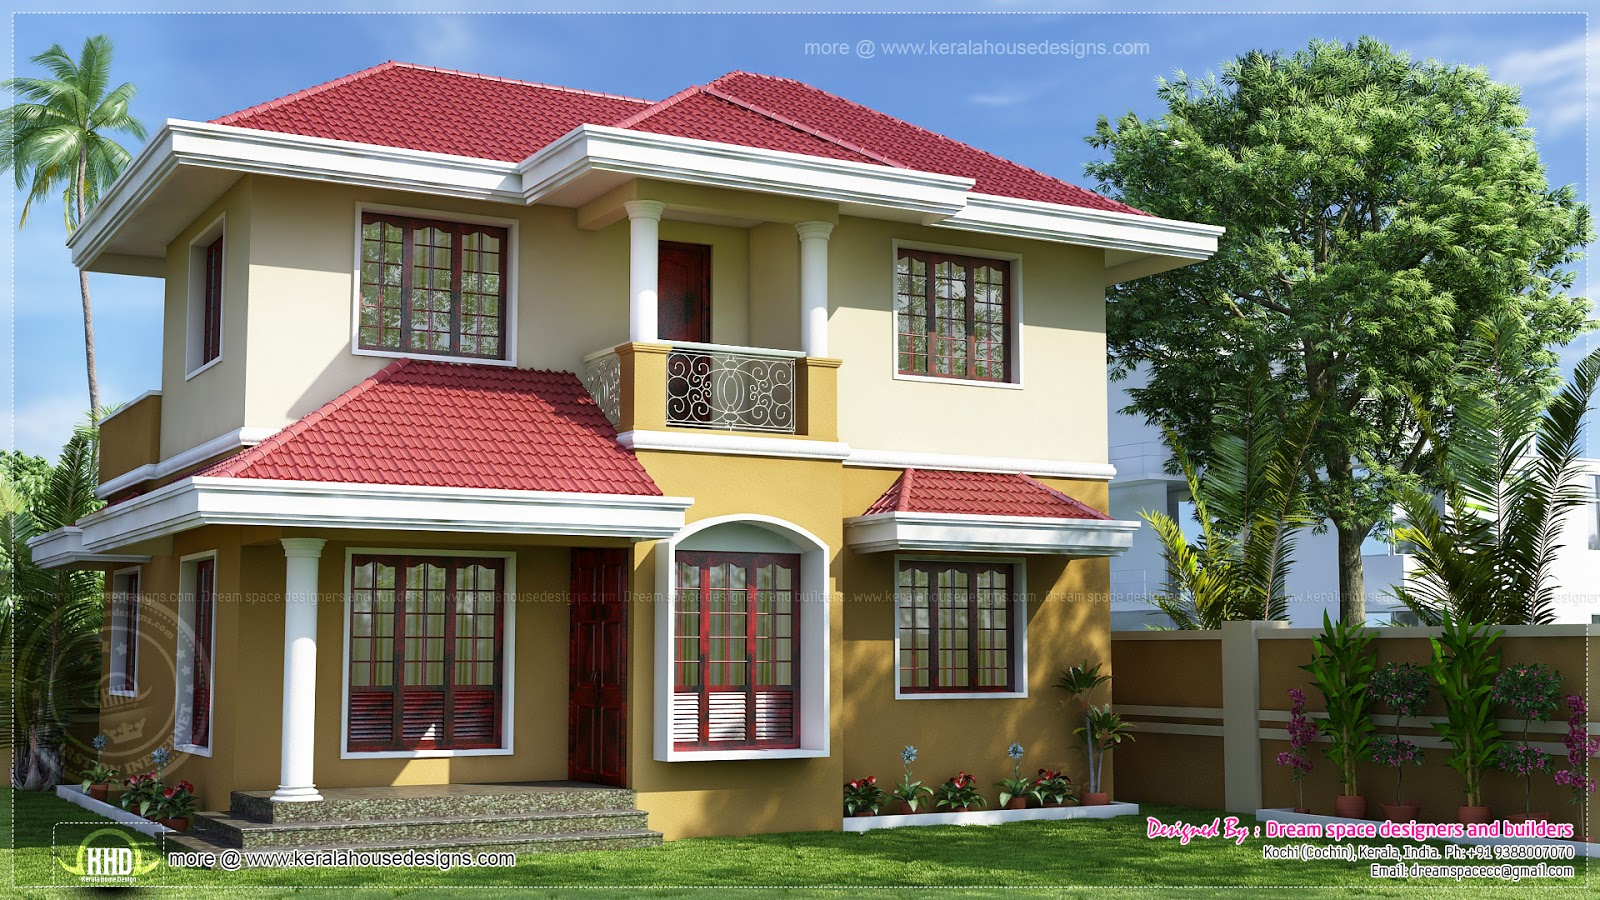 Villa with 3 bed appropriate in a 3 cents of land kerala for Www home plan design com